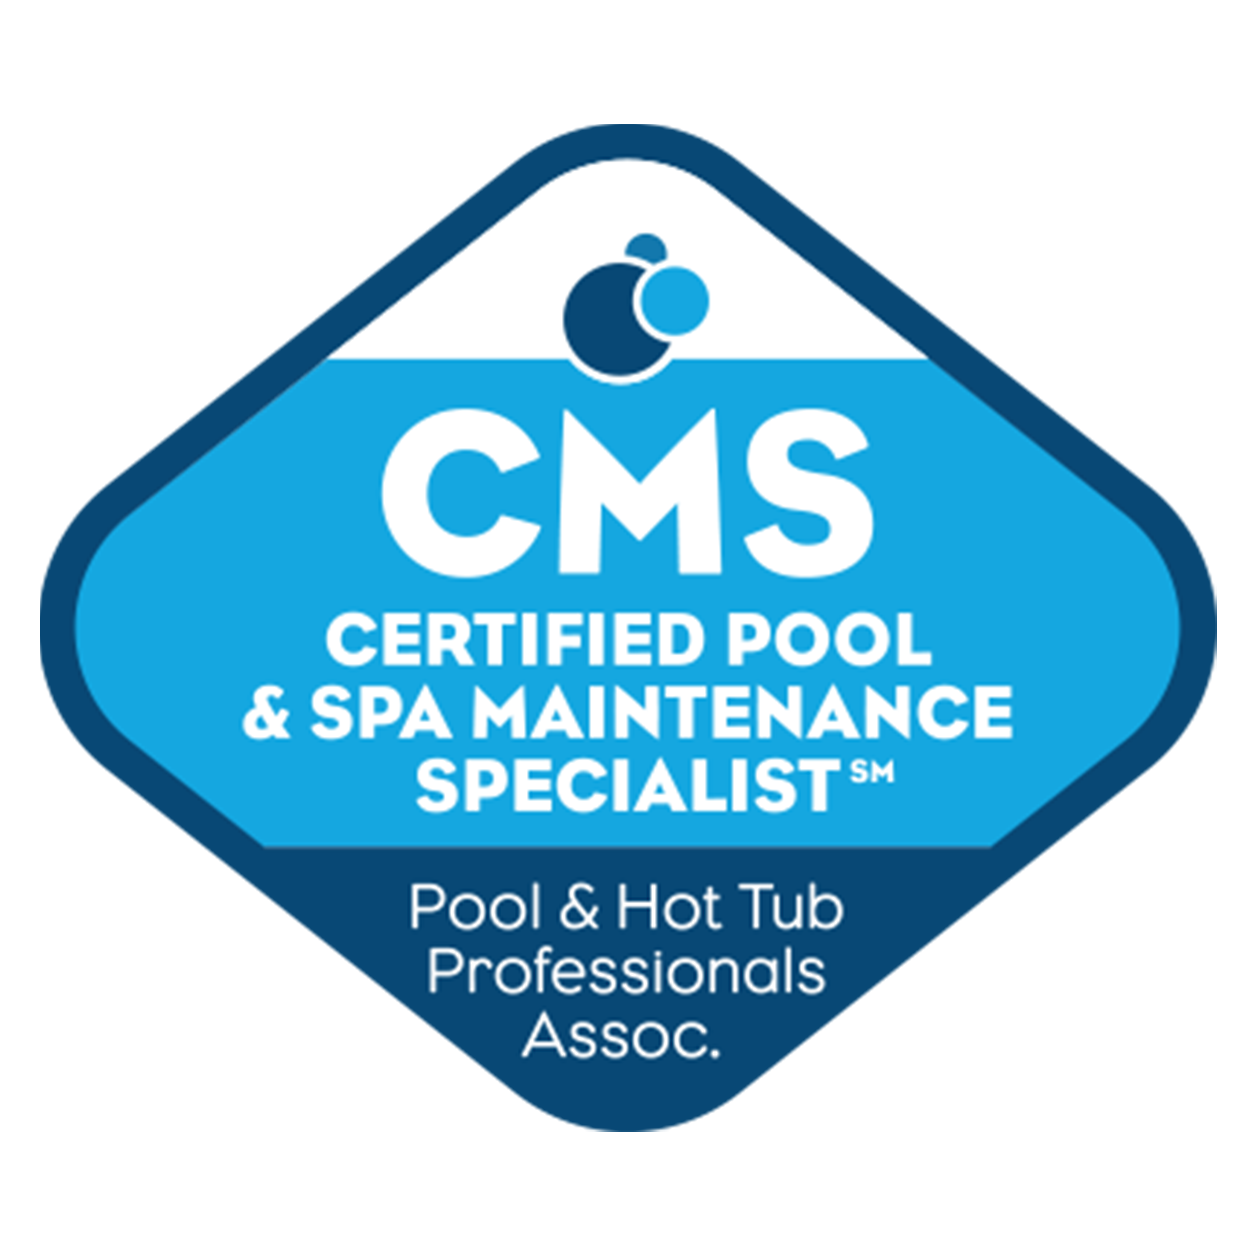 Certified Maintenance Specialist (CMS) Course and Exam